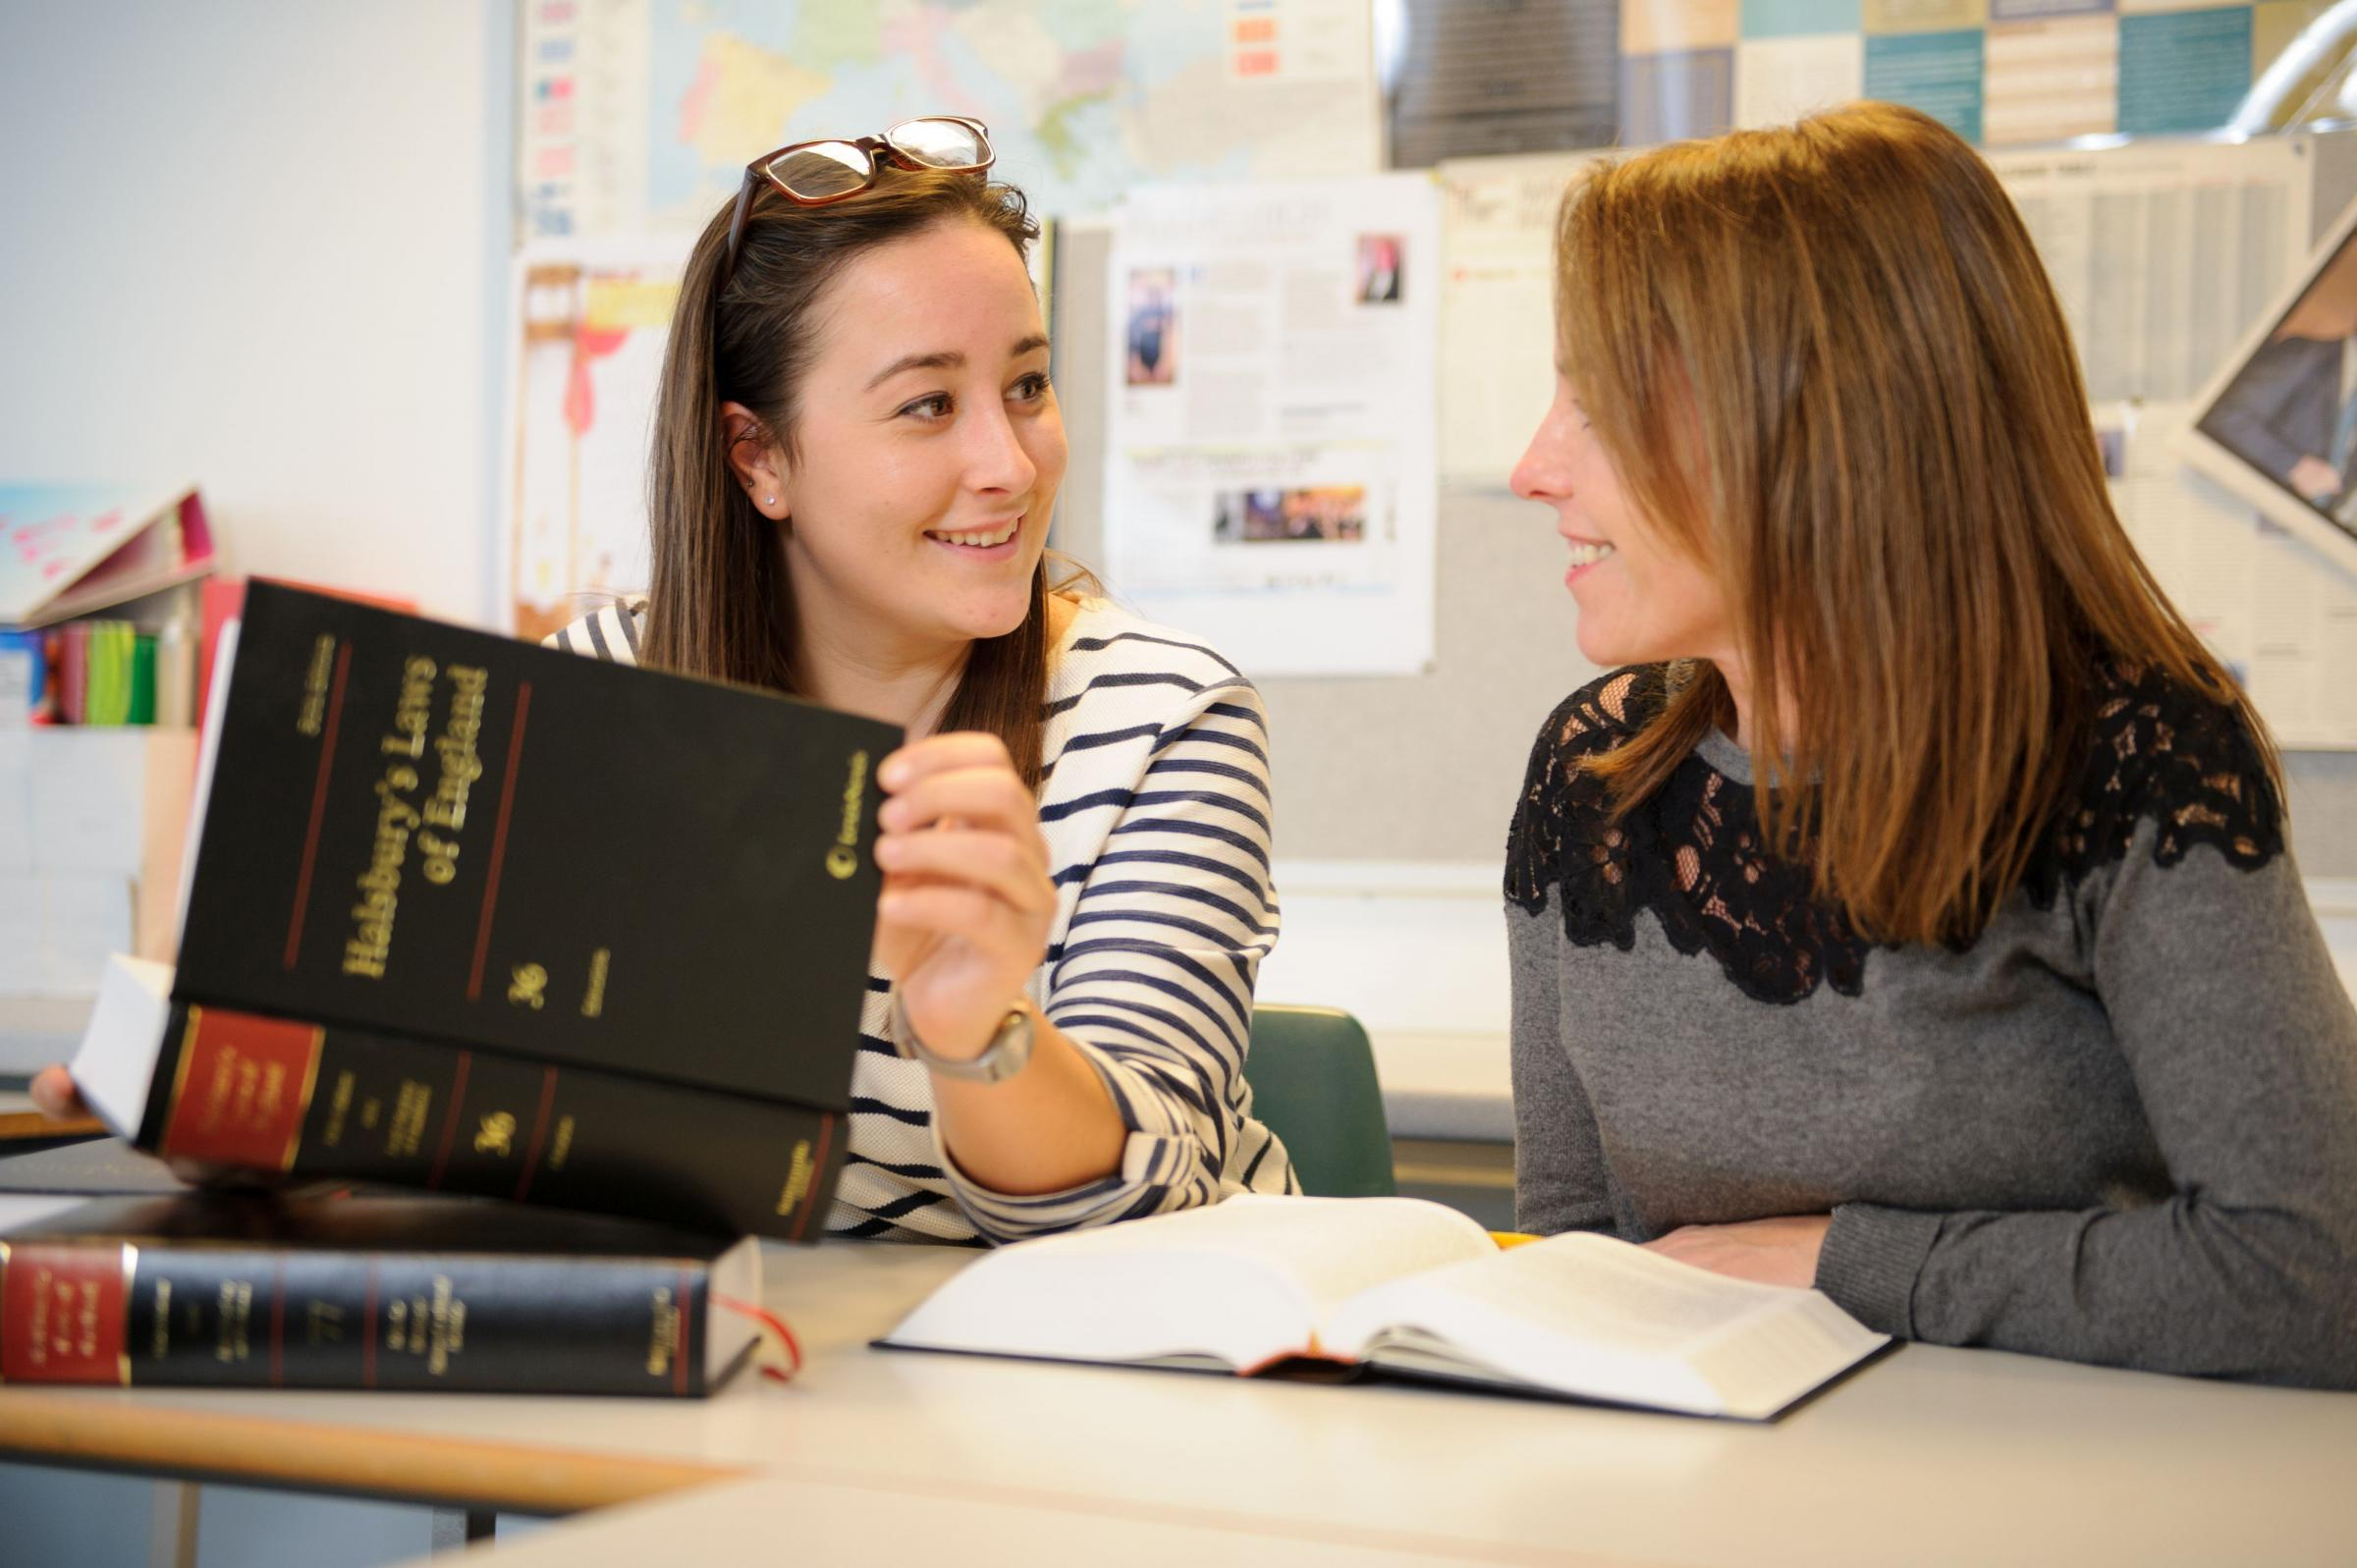 Business and law students who now have the opportunity to continue their full, three year degree courses at Truro and Penwith College.